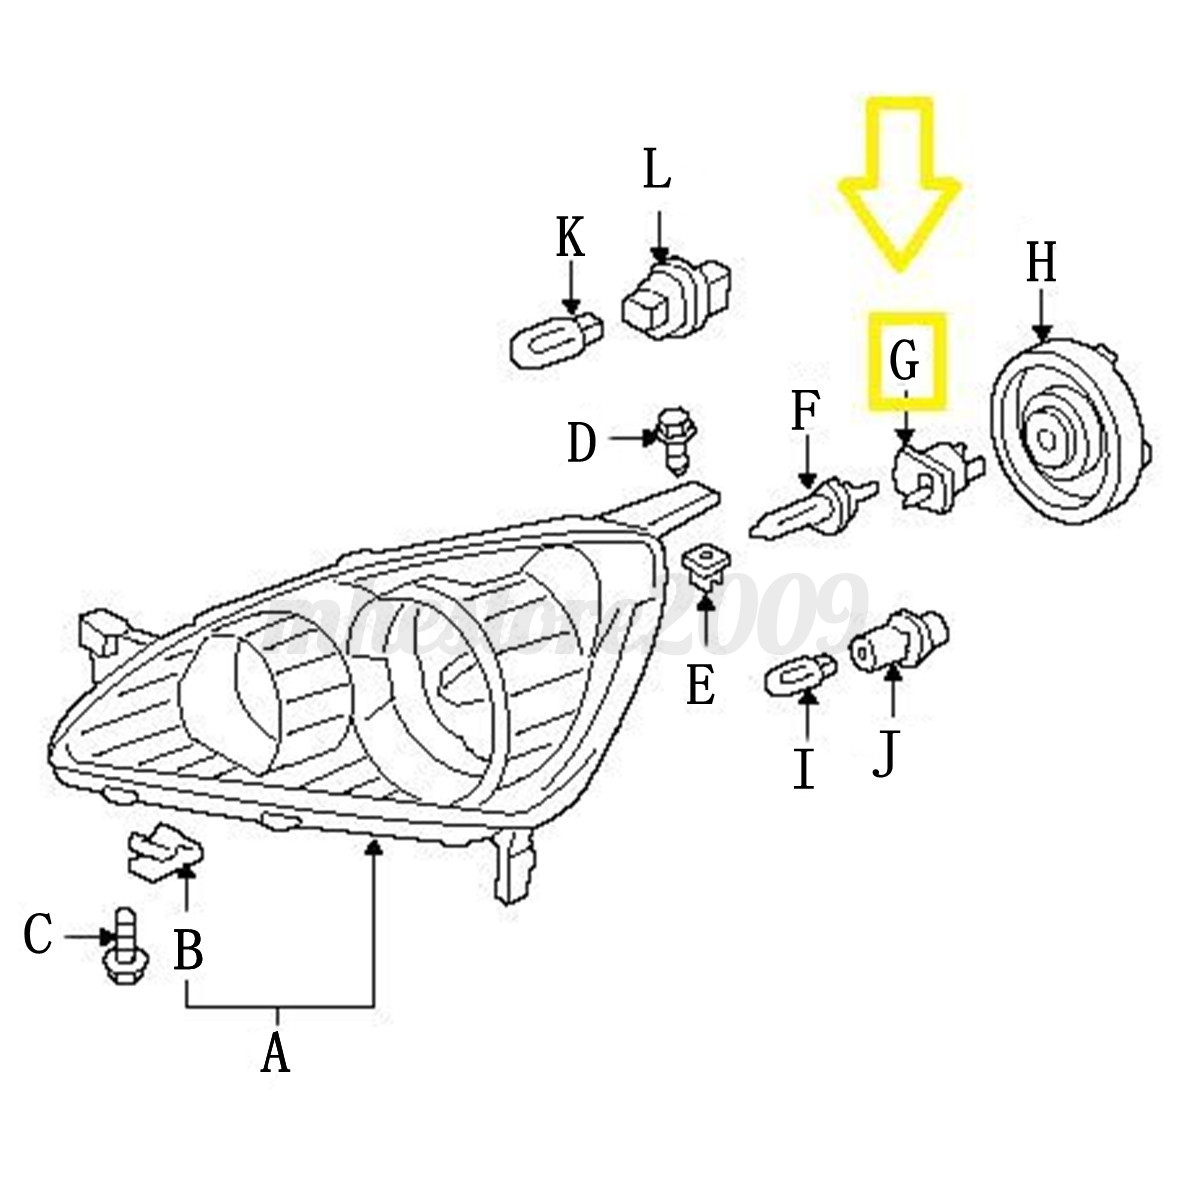 1995 Honda Prelude Alternator Diagram Electrical Wiring Diagrams 1985 98 Headlight Custom U2022 Special Edition